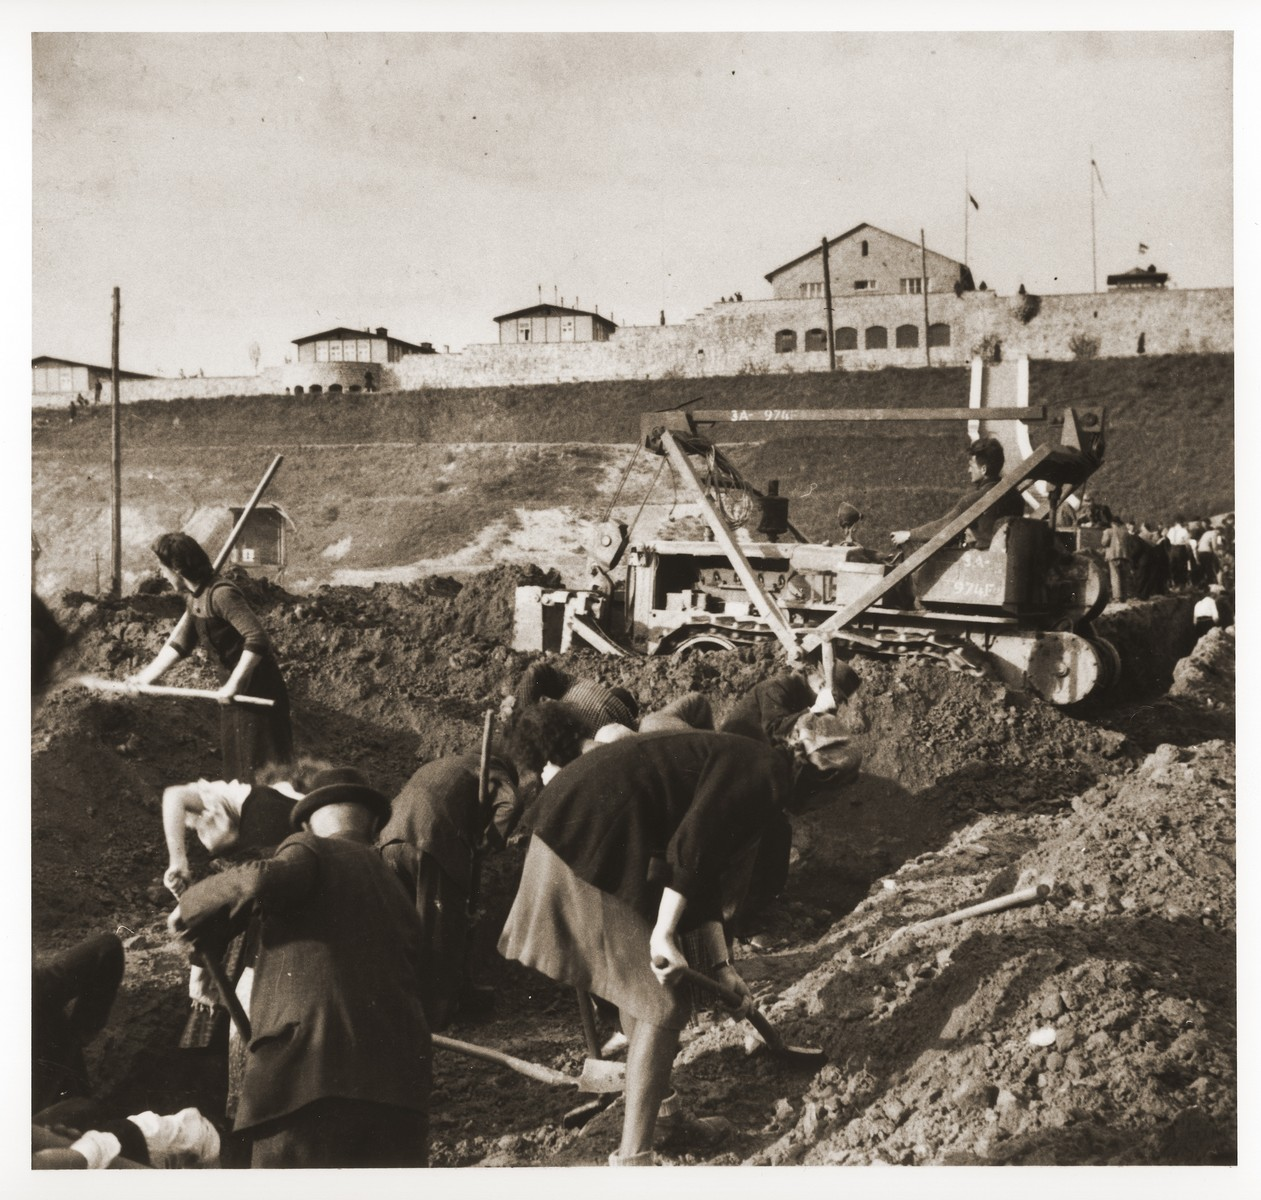 Austrian civilians dig a mass grave in the former SS soccer field in the Mauthausen concentration camp to bury the bodies of former inmates.    An American soldier, Elmer Salsman of the 56th Engineering Corps, drives a bulldozer in the background.